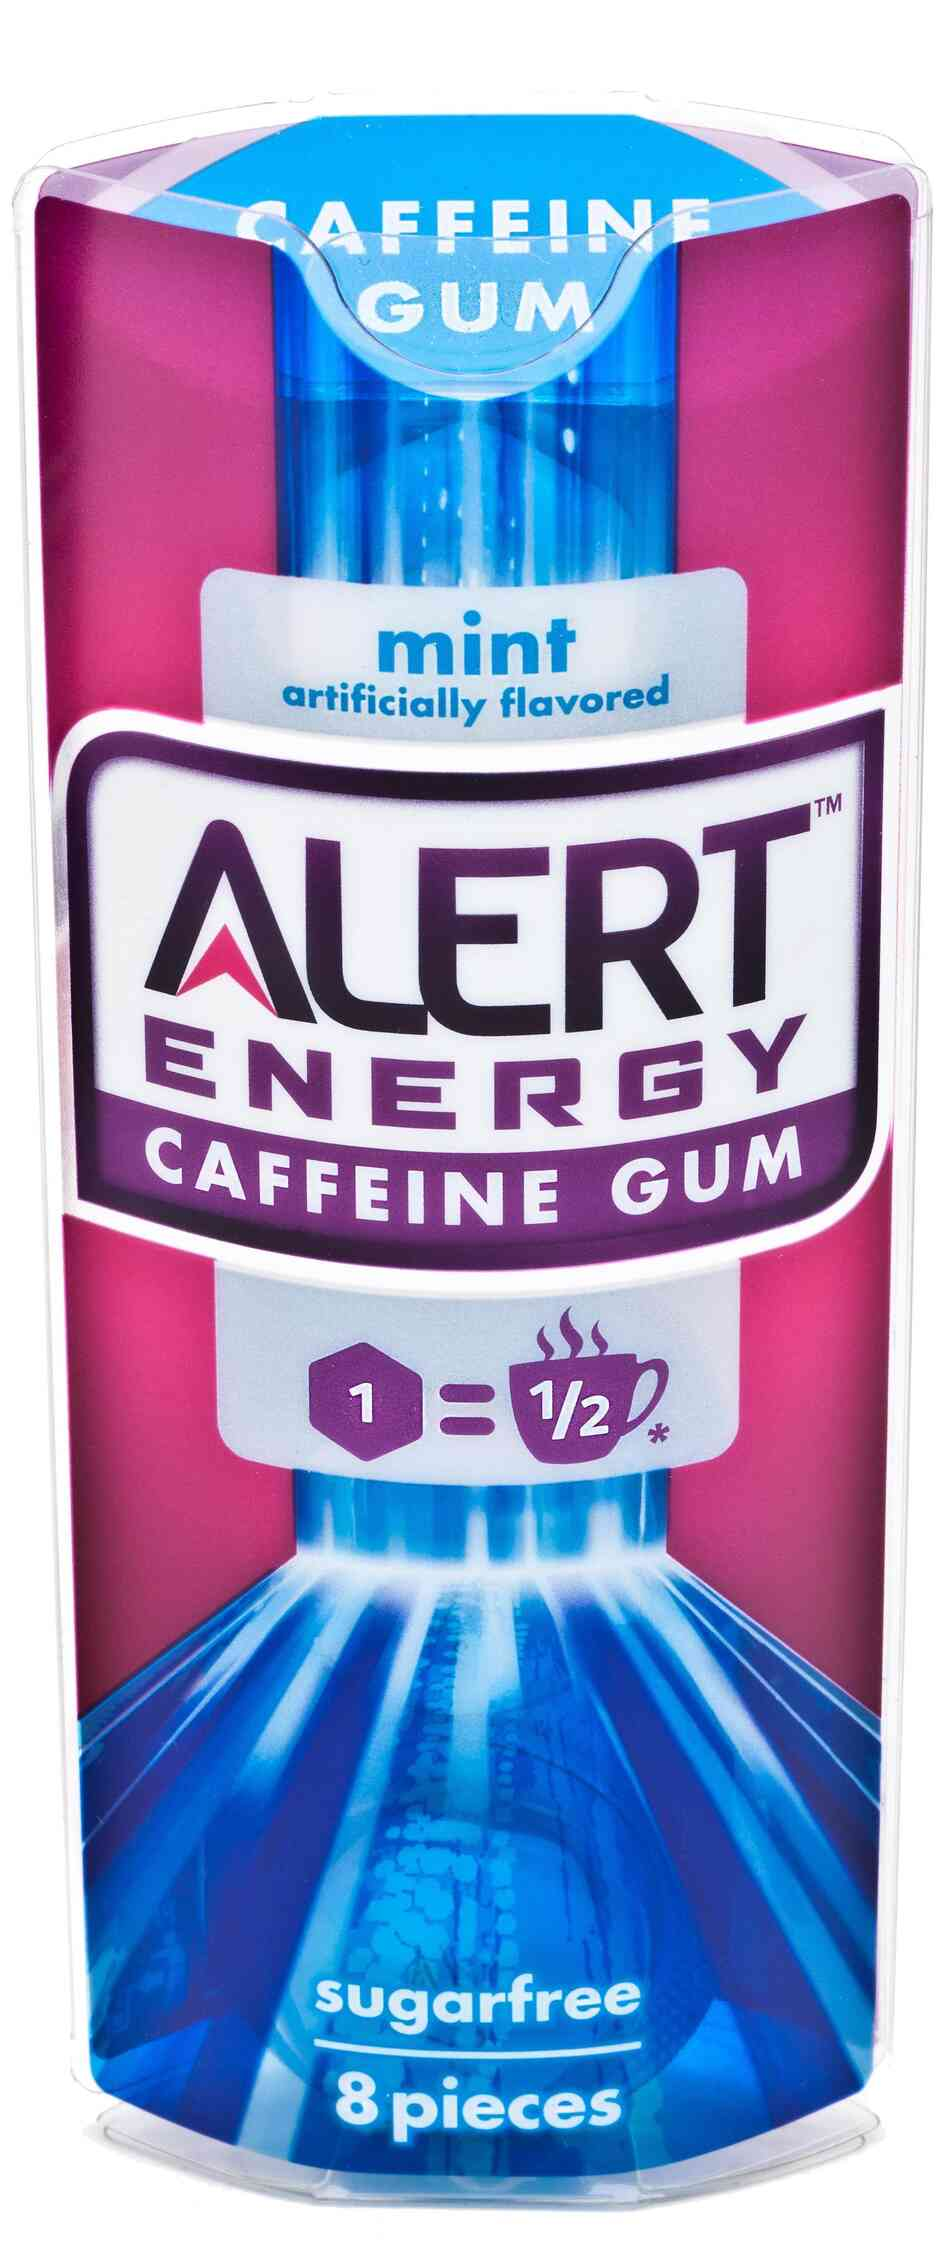 Wrigley says its new Alert Energy Caffeine Gum gives consumers the power to control how much caffeine they get.